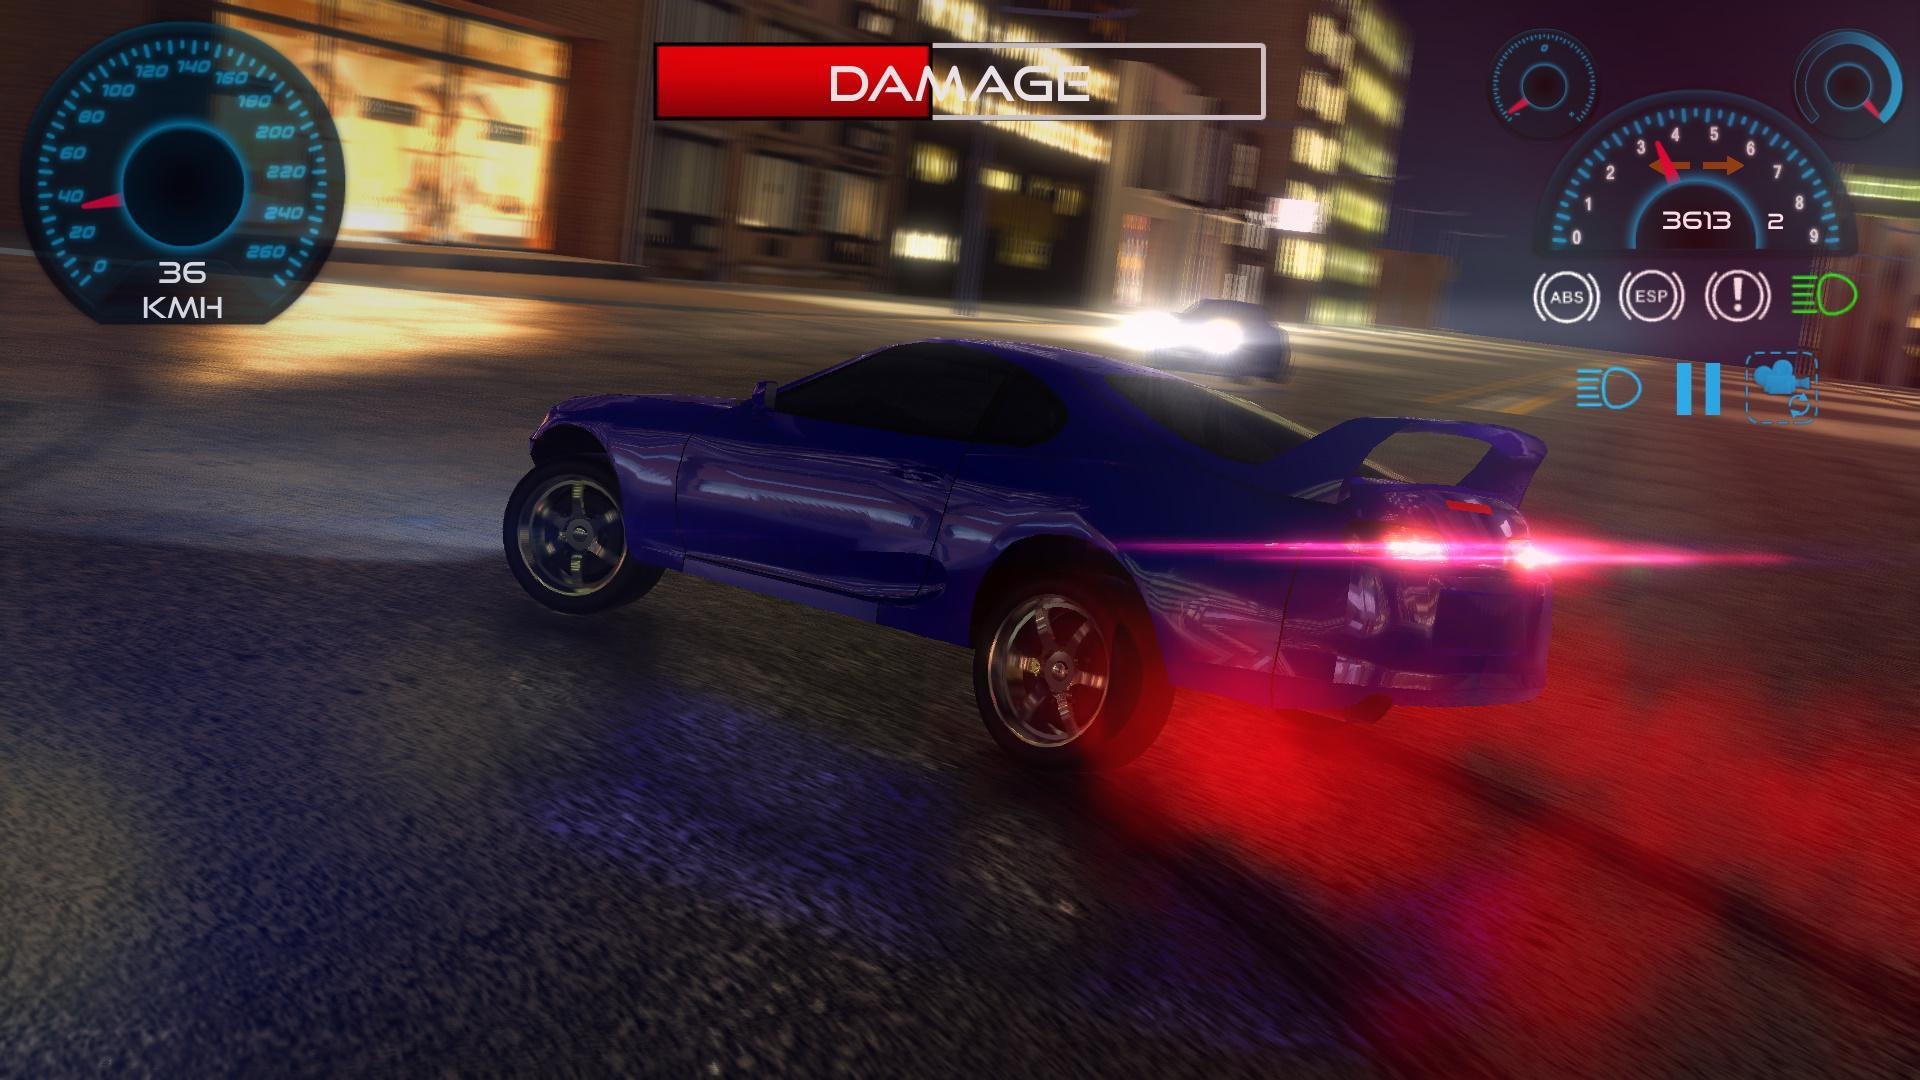 City Car Driving Simulator Online For Android Apk Download